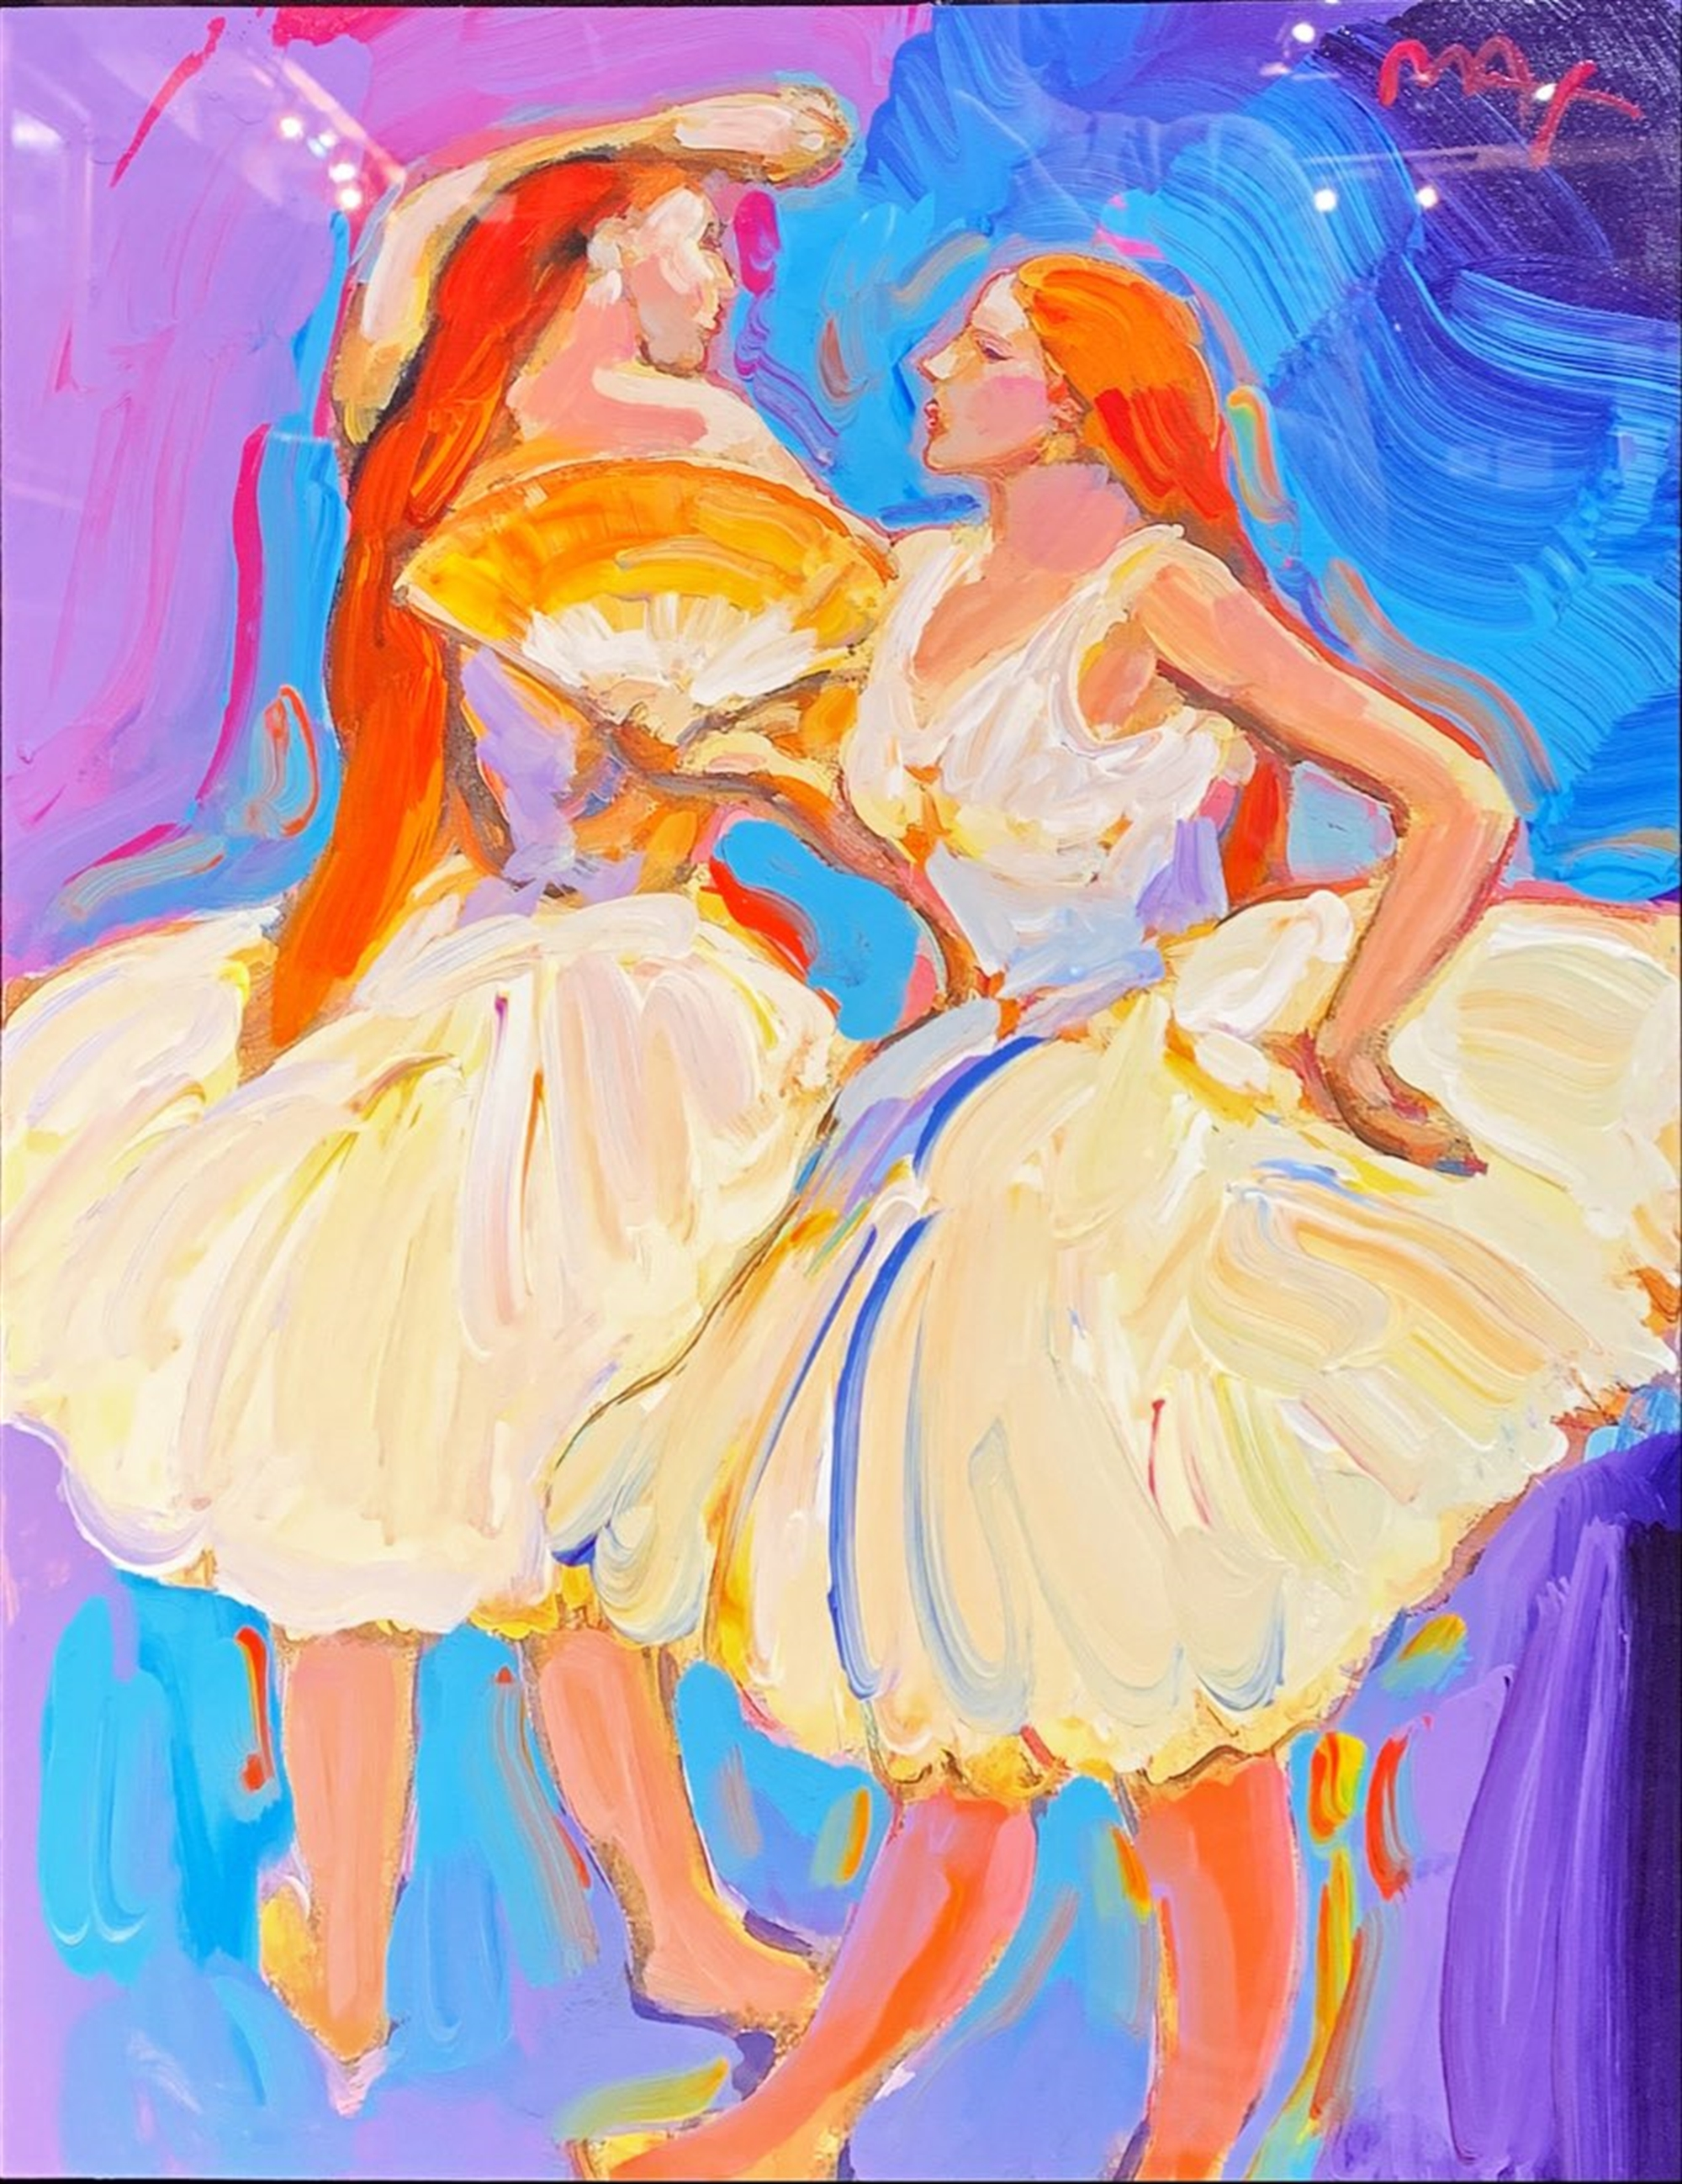 Homage to Degas: Two Dancers with Fan by Peter Max